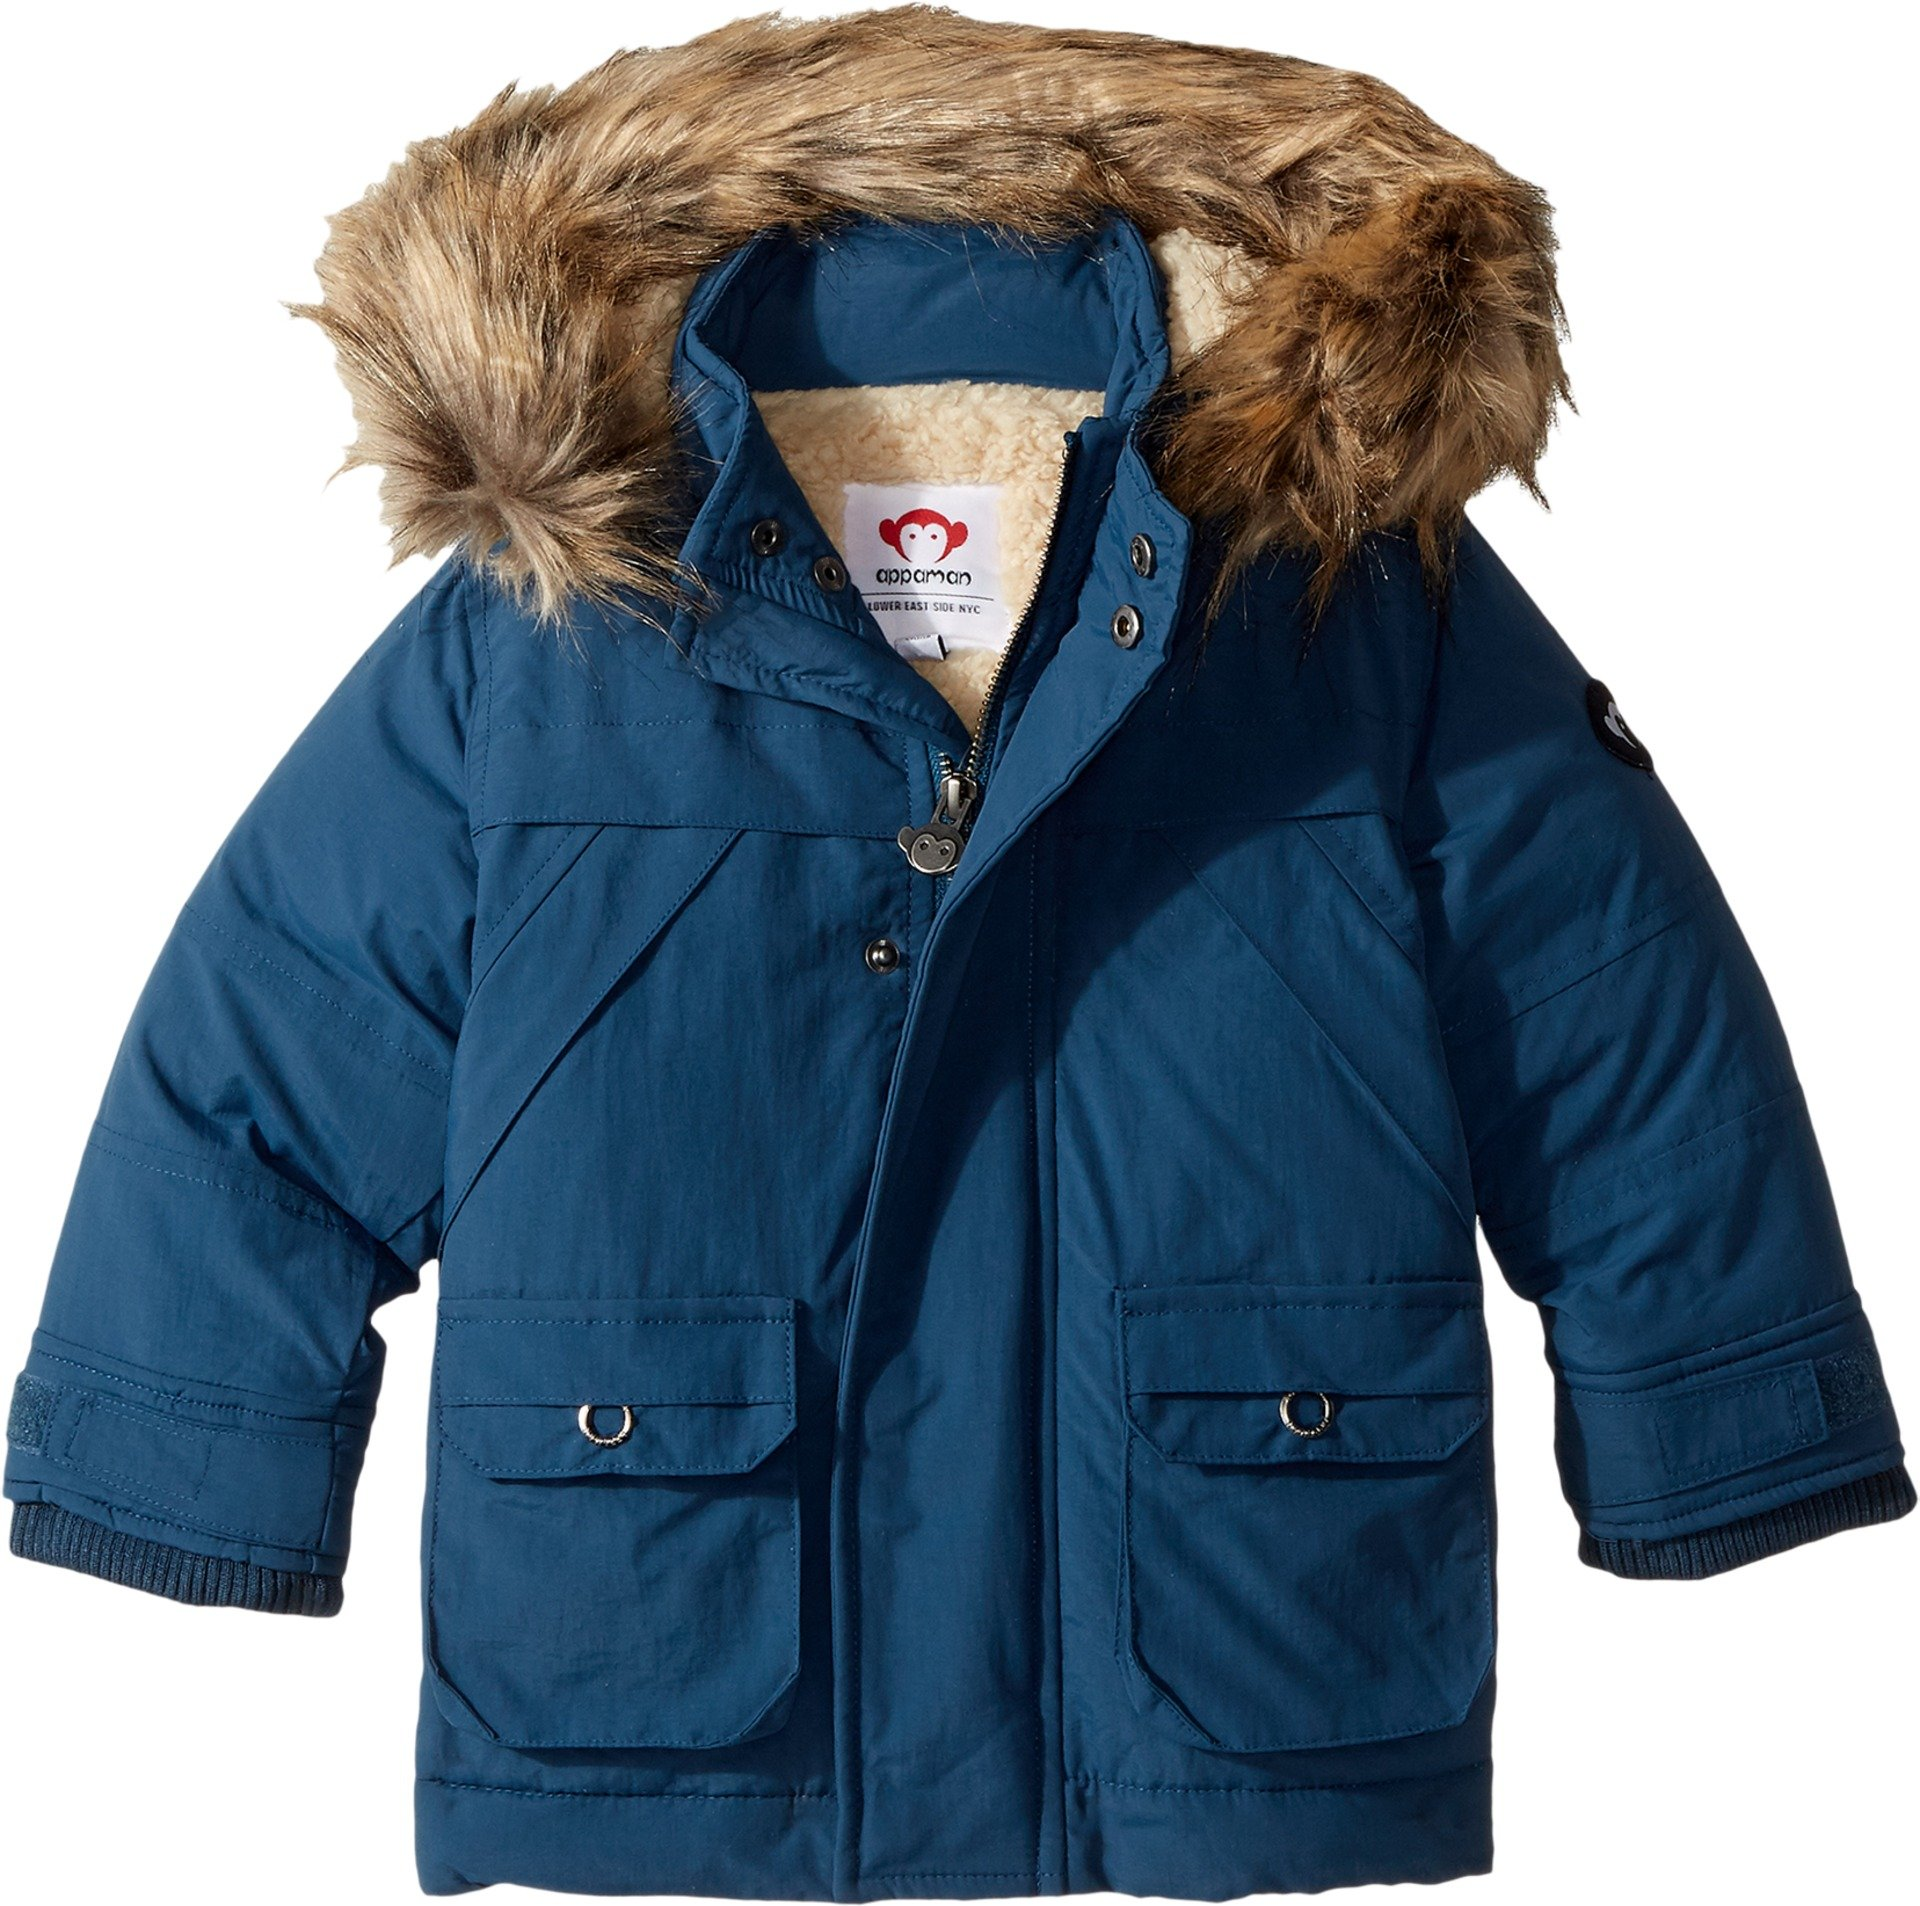 Appaman Kids  Baby Boy's Denali Down Coat (Toddler/Little Kids/Big Kids) Denim Blue 12 by Appaman Kids